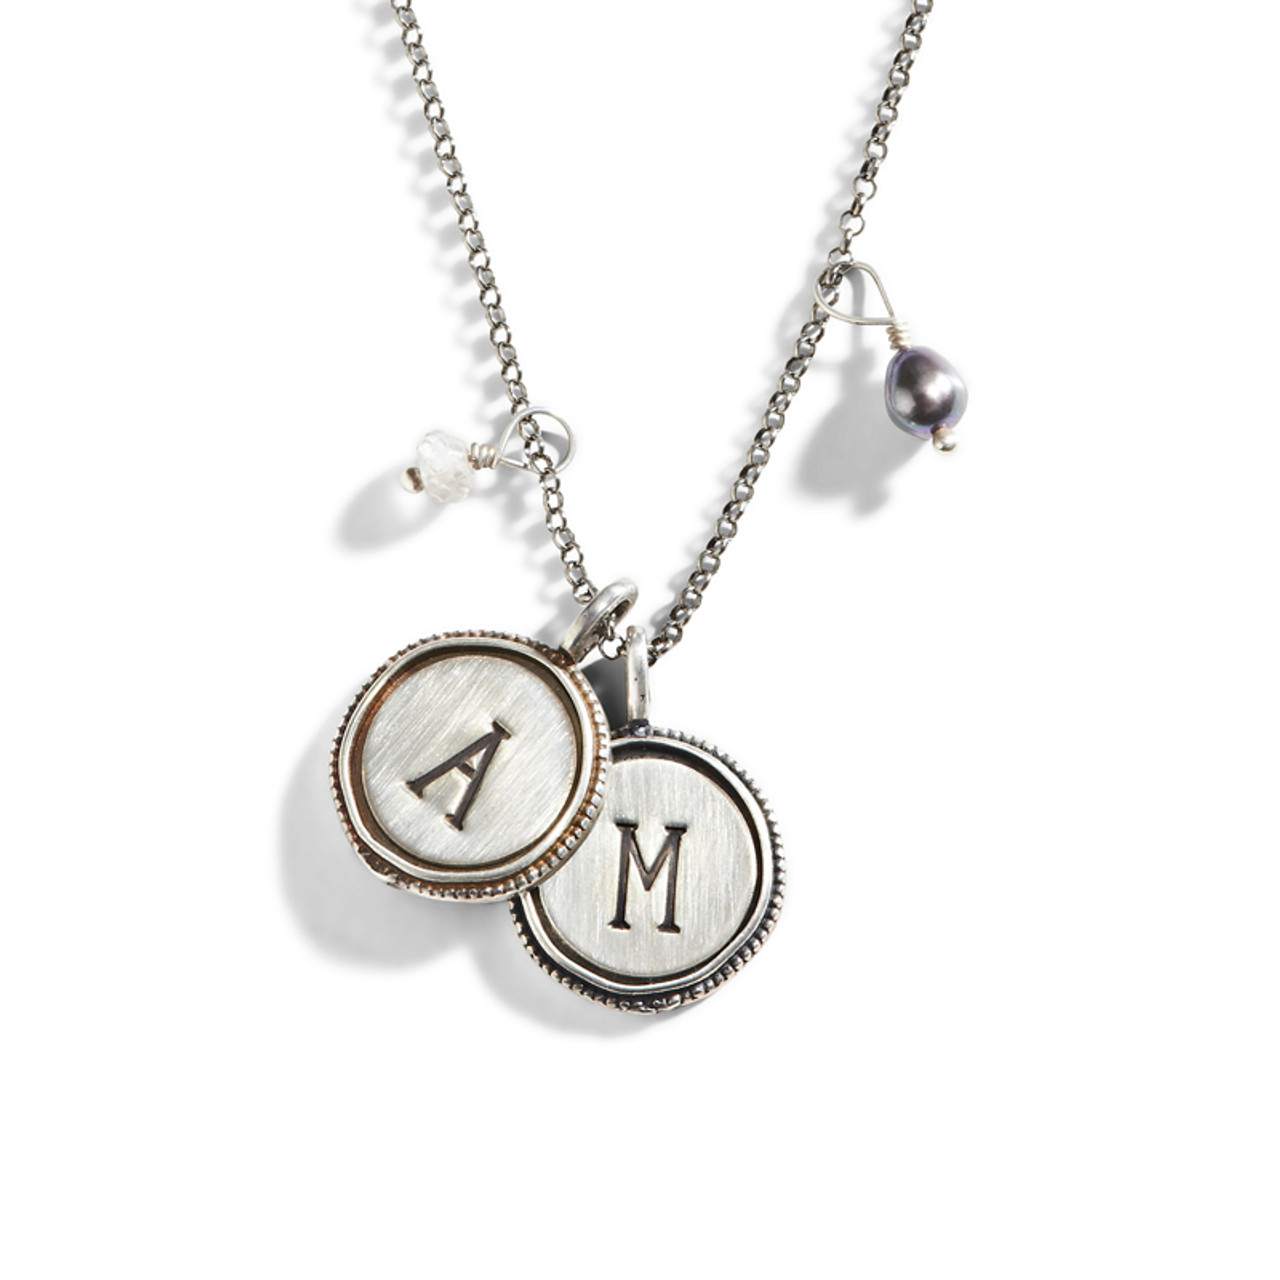 Vintage initial necklace stamped initial necklace vintage initial stamped necklace aloadofball Choice Image